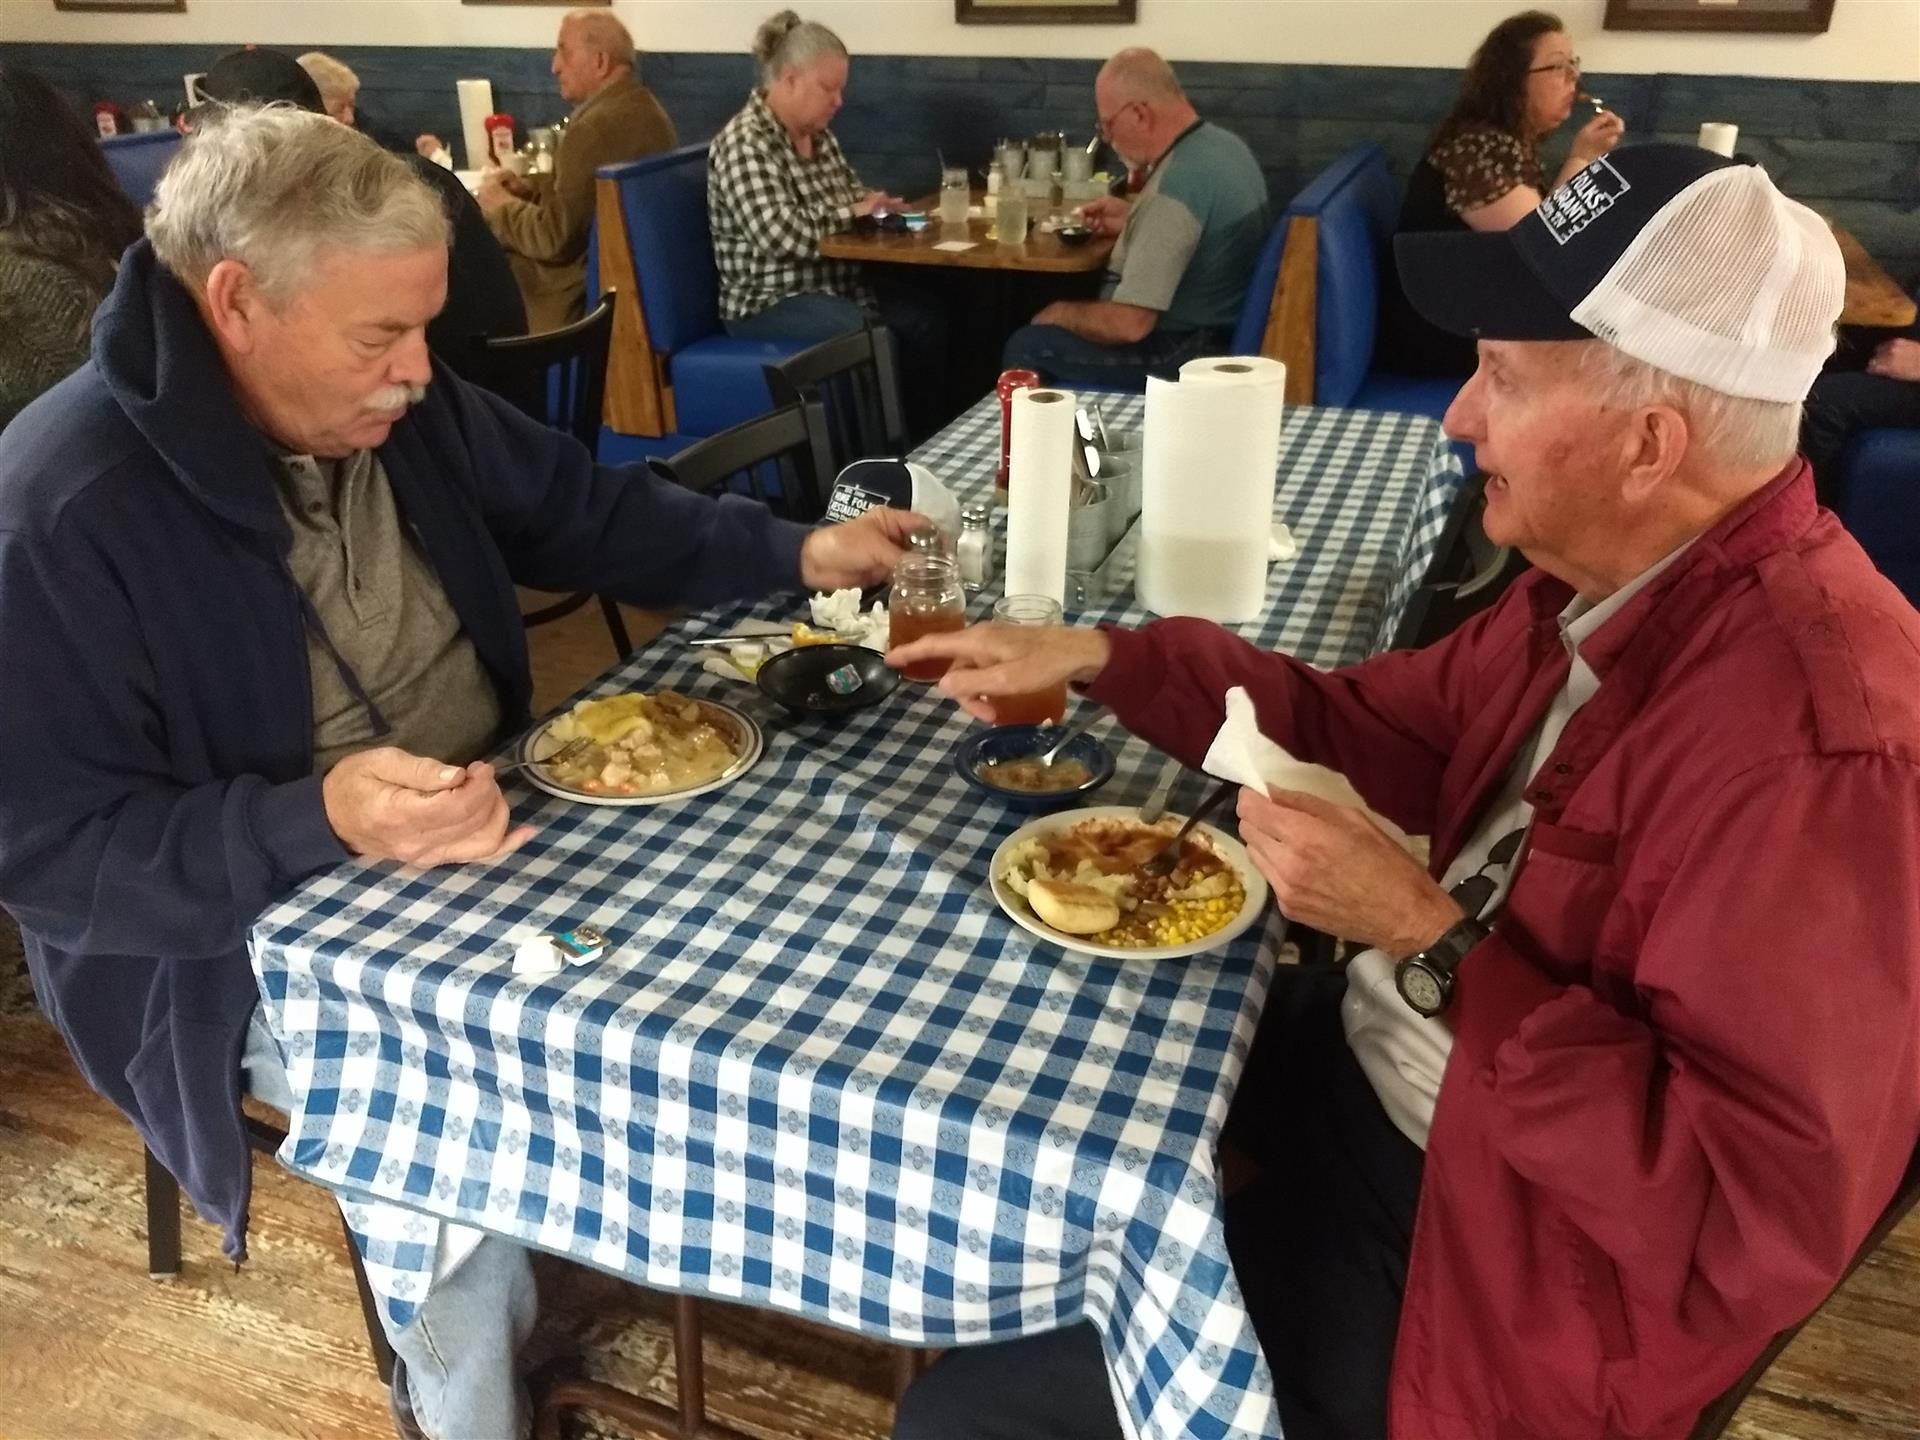 2 older gentlemen sitting at a table in the restaurant with plates of food